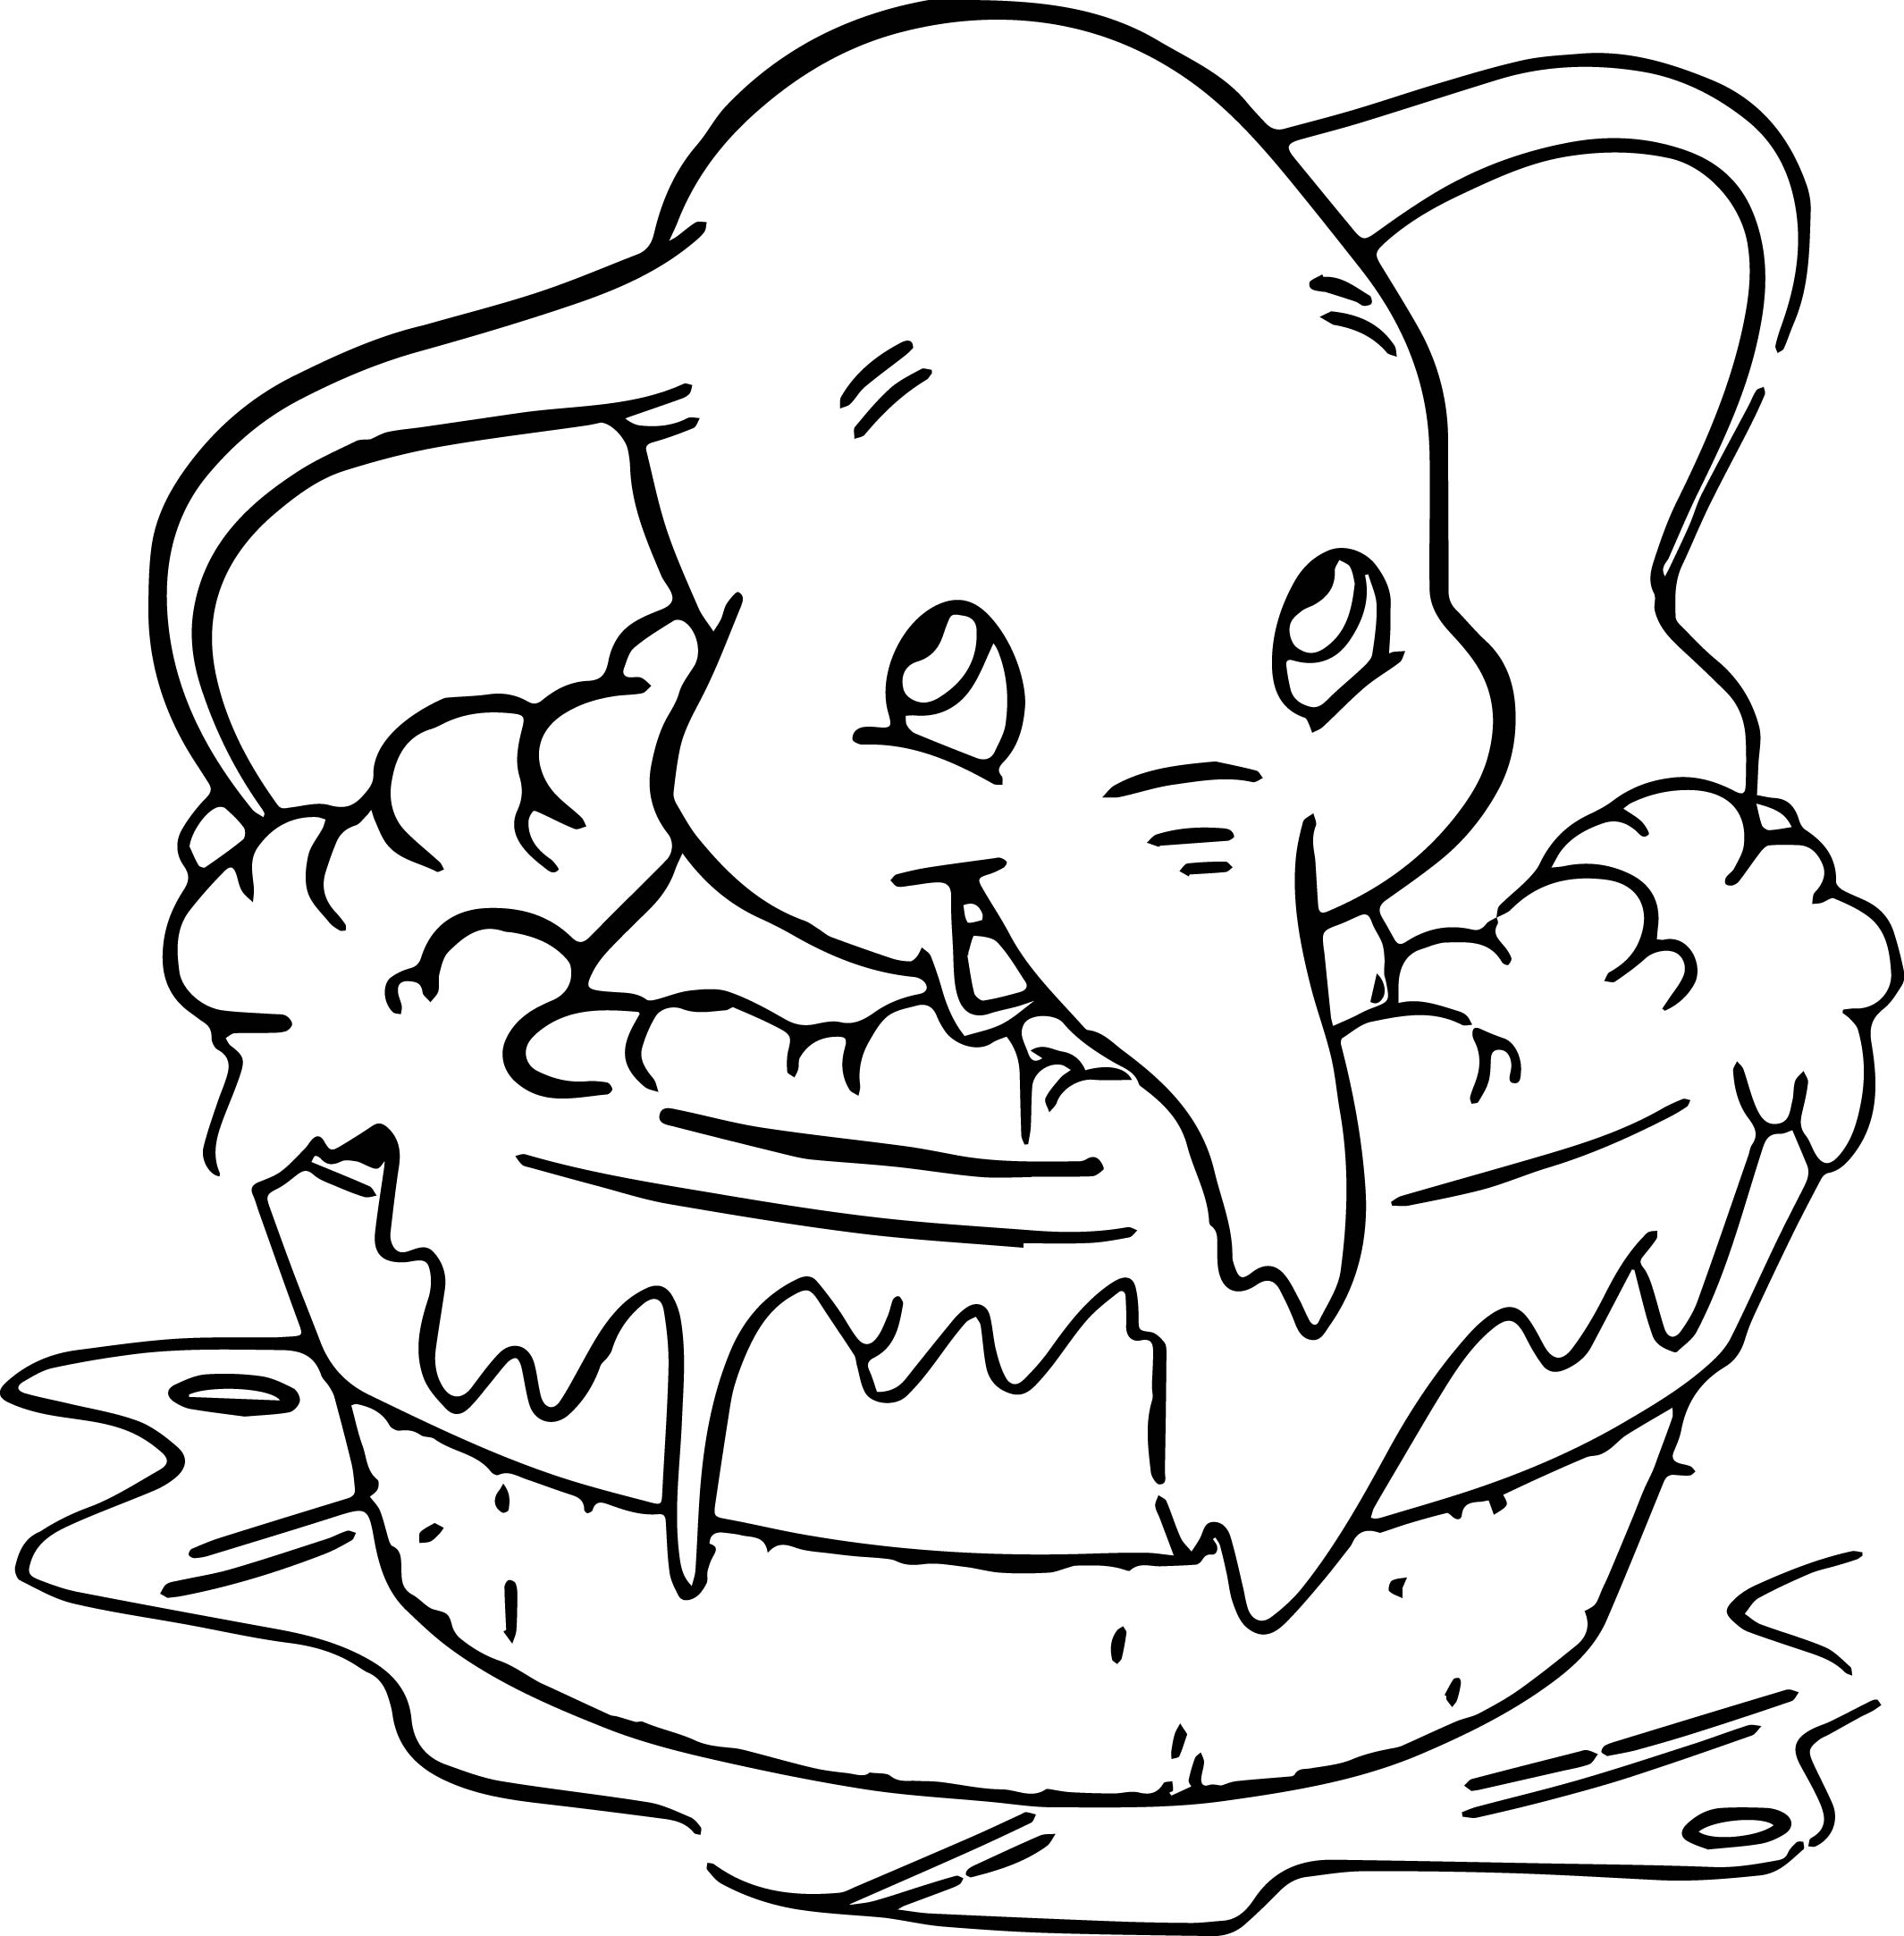 dumbo the elephant coloring pages dumbo coloring pages printable 32 colors of pictures the pages dumbo coloring elephant